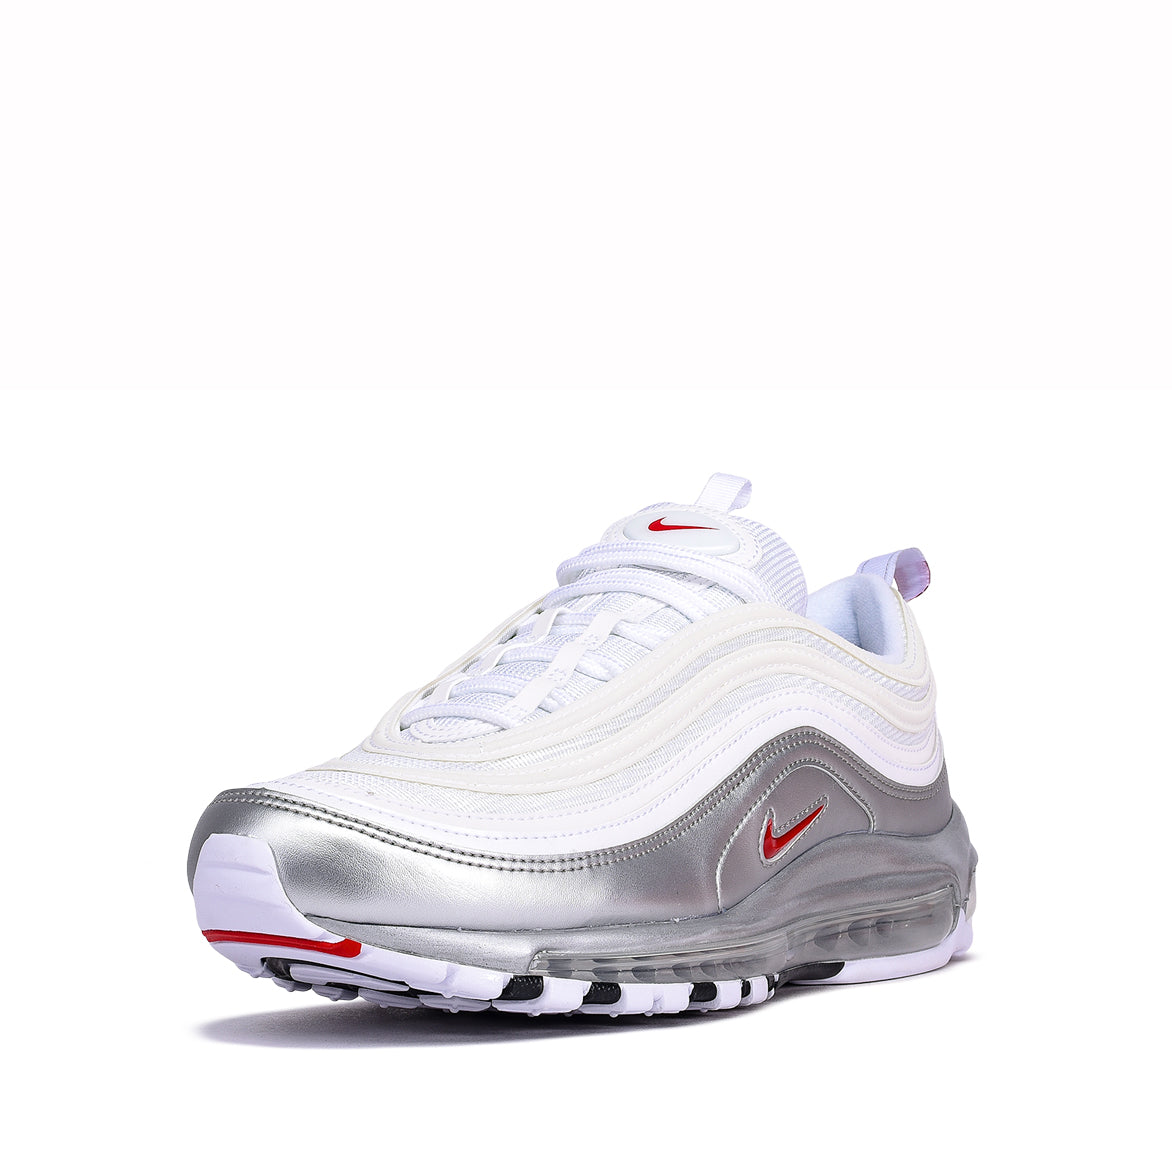 "AIR MAX 97 QS ""METALLIC PACK"" - WHITE / METALLIC SILVER"